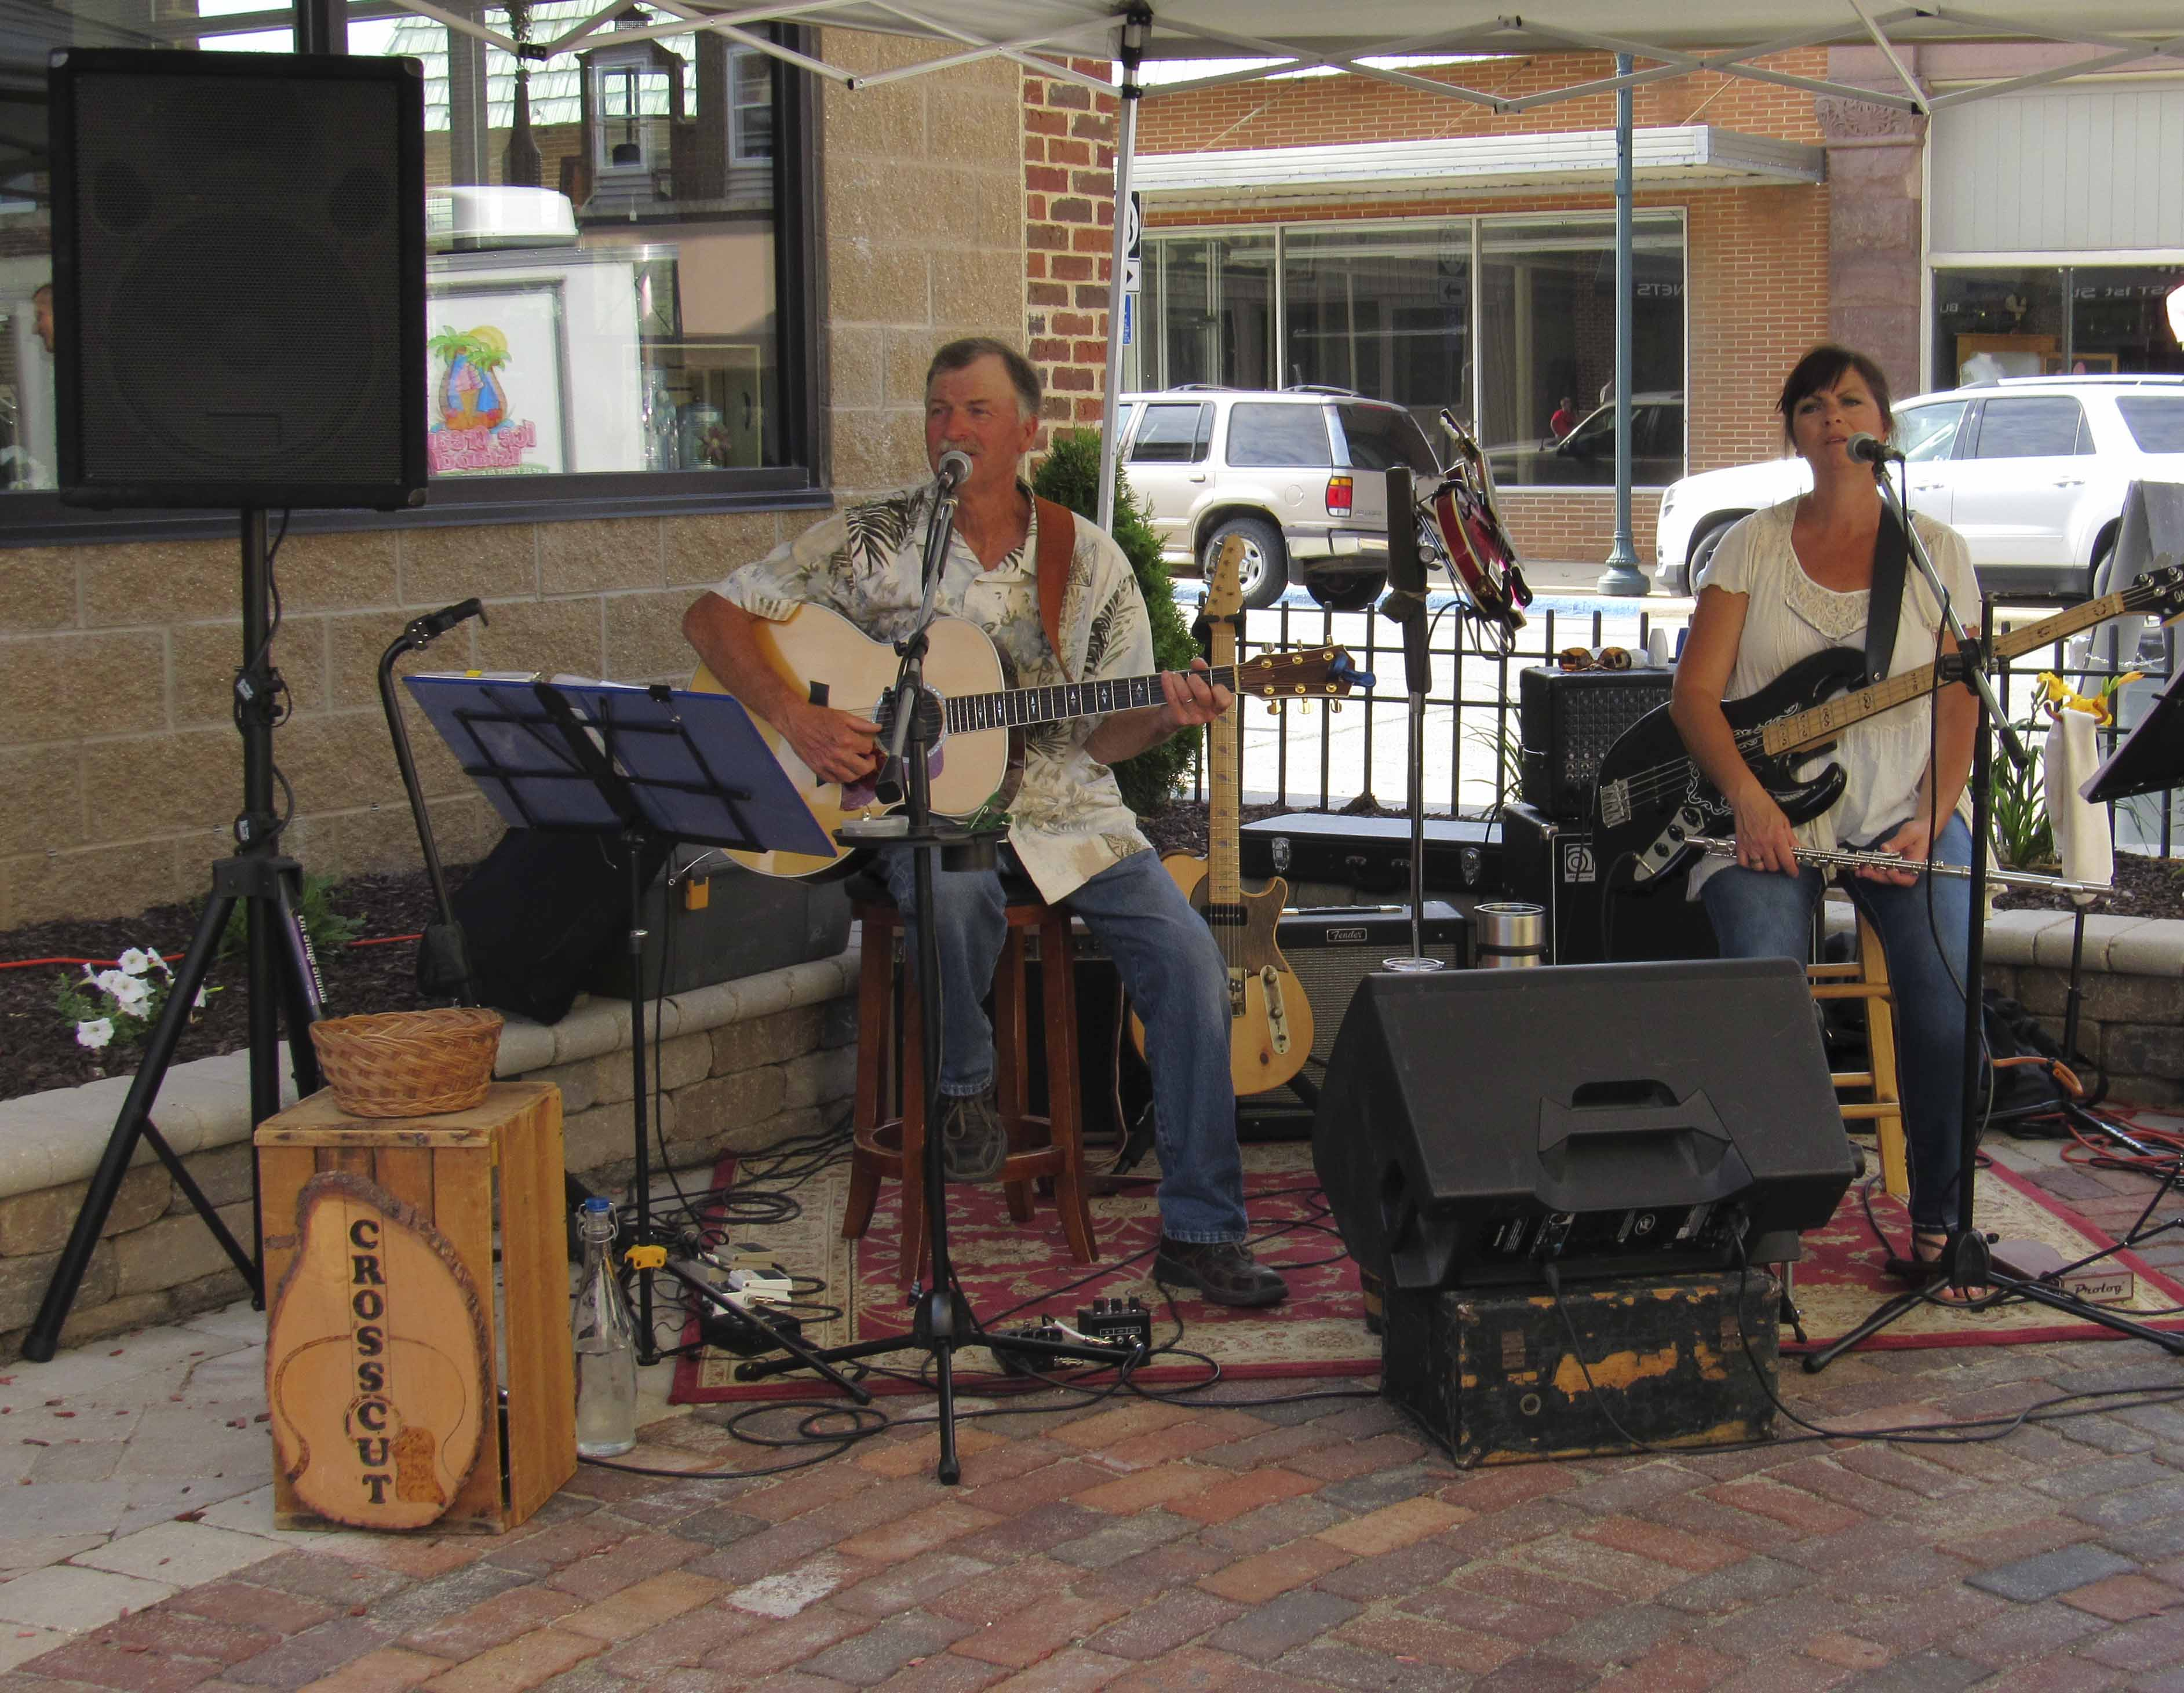 Popular local band Crosscut performed at Monticello's first Uptown Thursday Night on June 22. The event was held at the downtown pocket park. Dennis Chapman and Sheree Doyle make up Crosscut. (Photos by Kim Brooks)